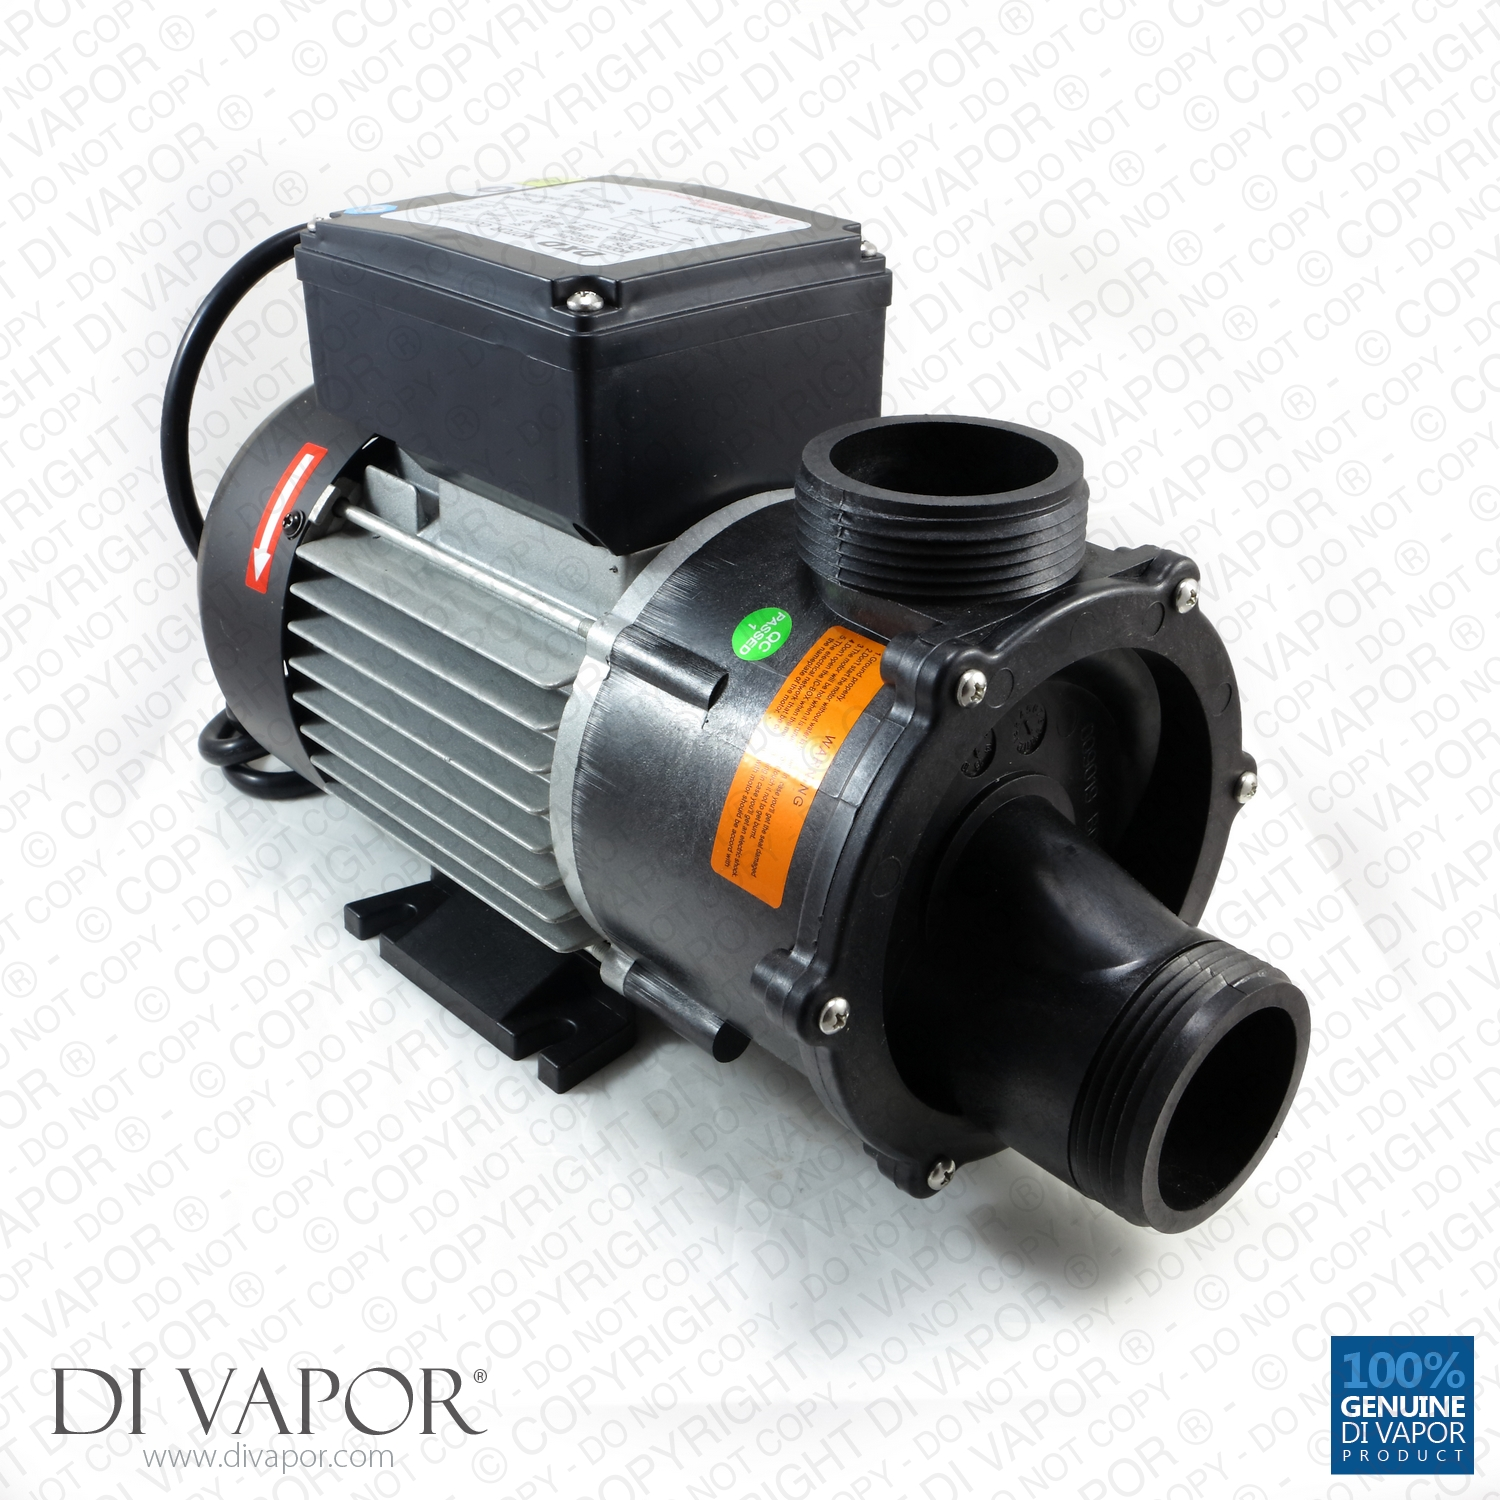 Jacuzzi Pool Pumps Dxd 310x 40kw 5hp Water Pump For Hot Tub Spa